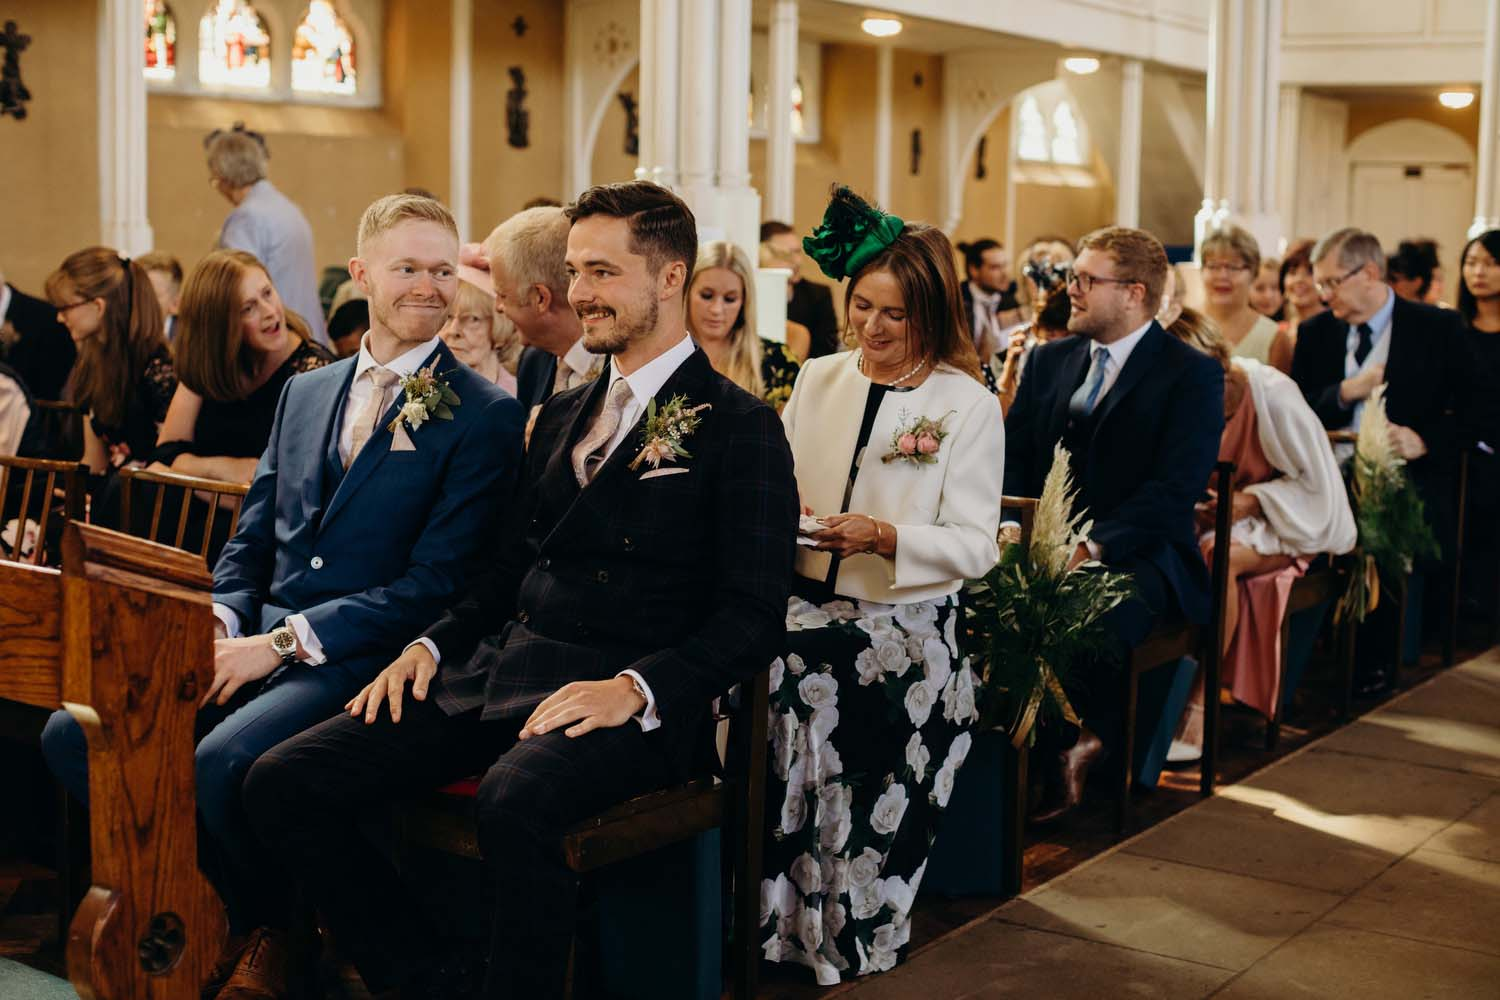 Groom smiling with best man